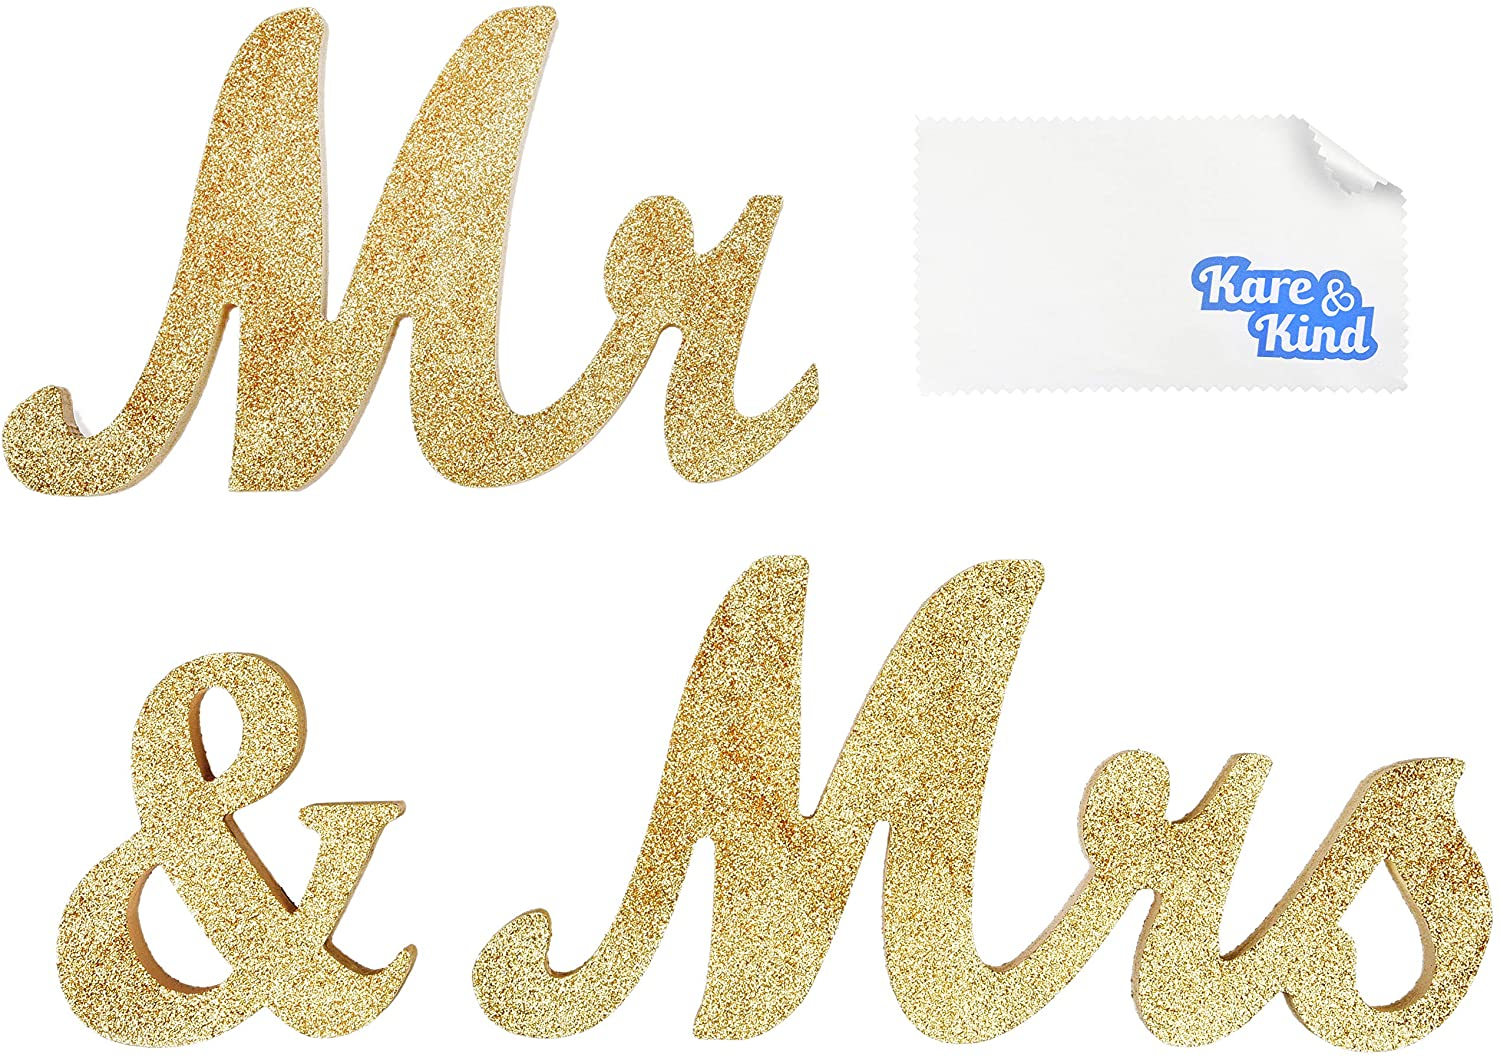 Kare & Kind Mr & Mrs. Sign (Glittery Gold) - Venue Decor - for Weddings, Anniversaries, Bridal Showers and More - Sweetheart Wedding Table Decoration - DIY Projects, Gift, Display